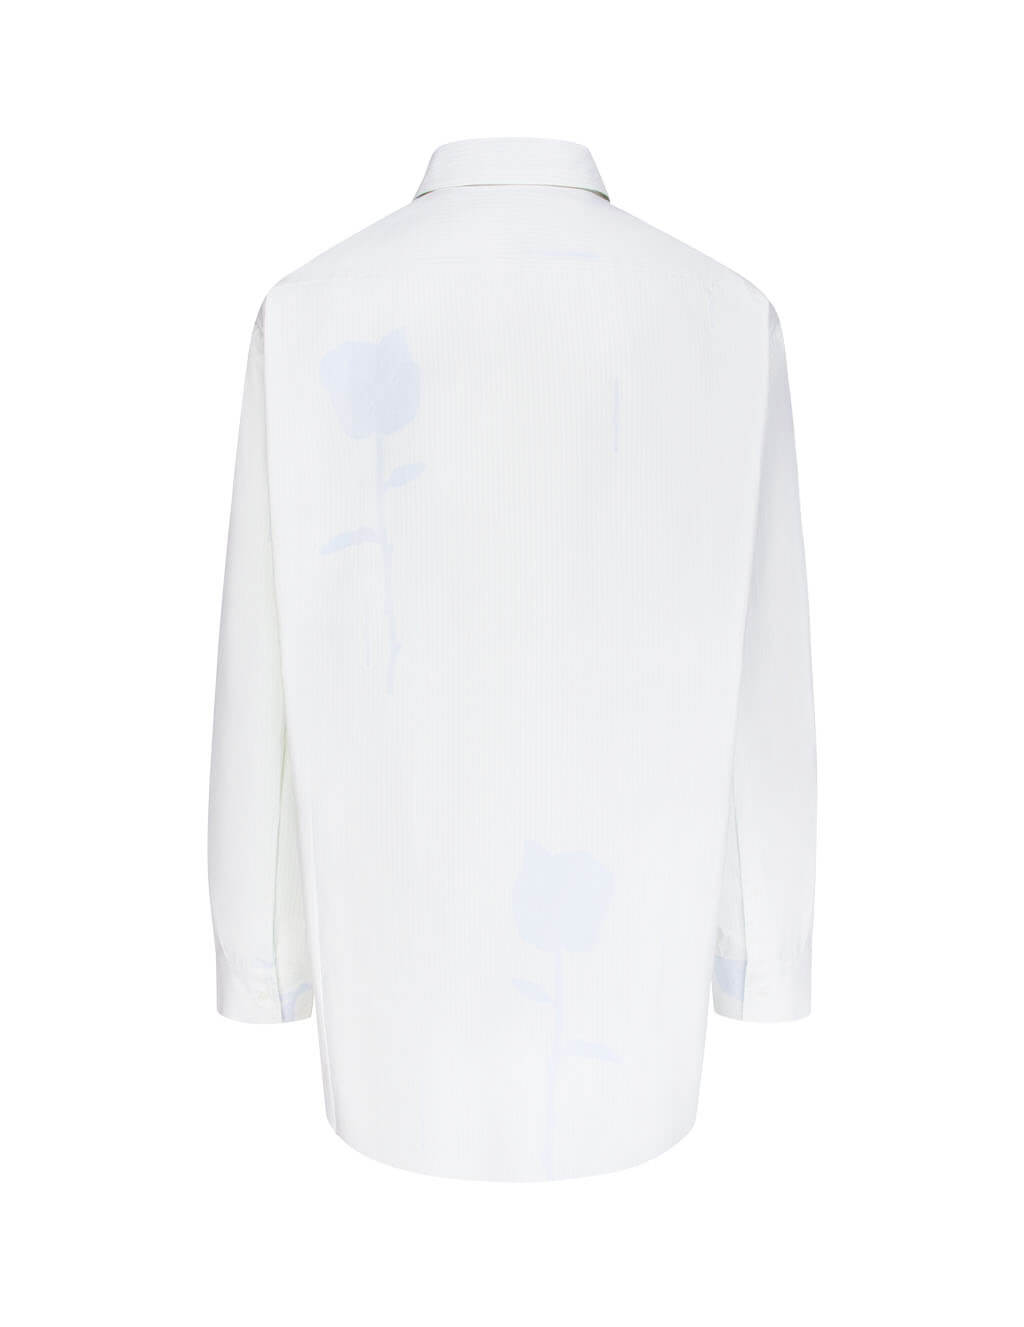 Off-White Men's Giulio Fashion White Floral Shirt OMGA094F19F360260110